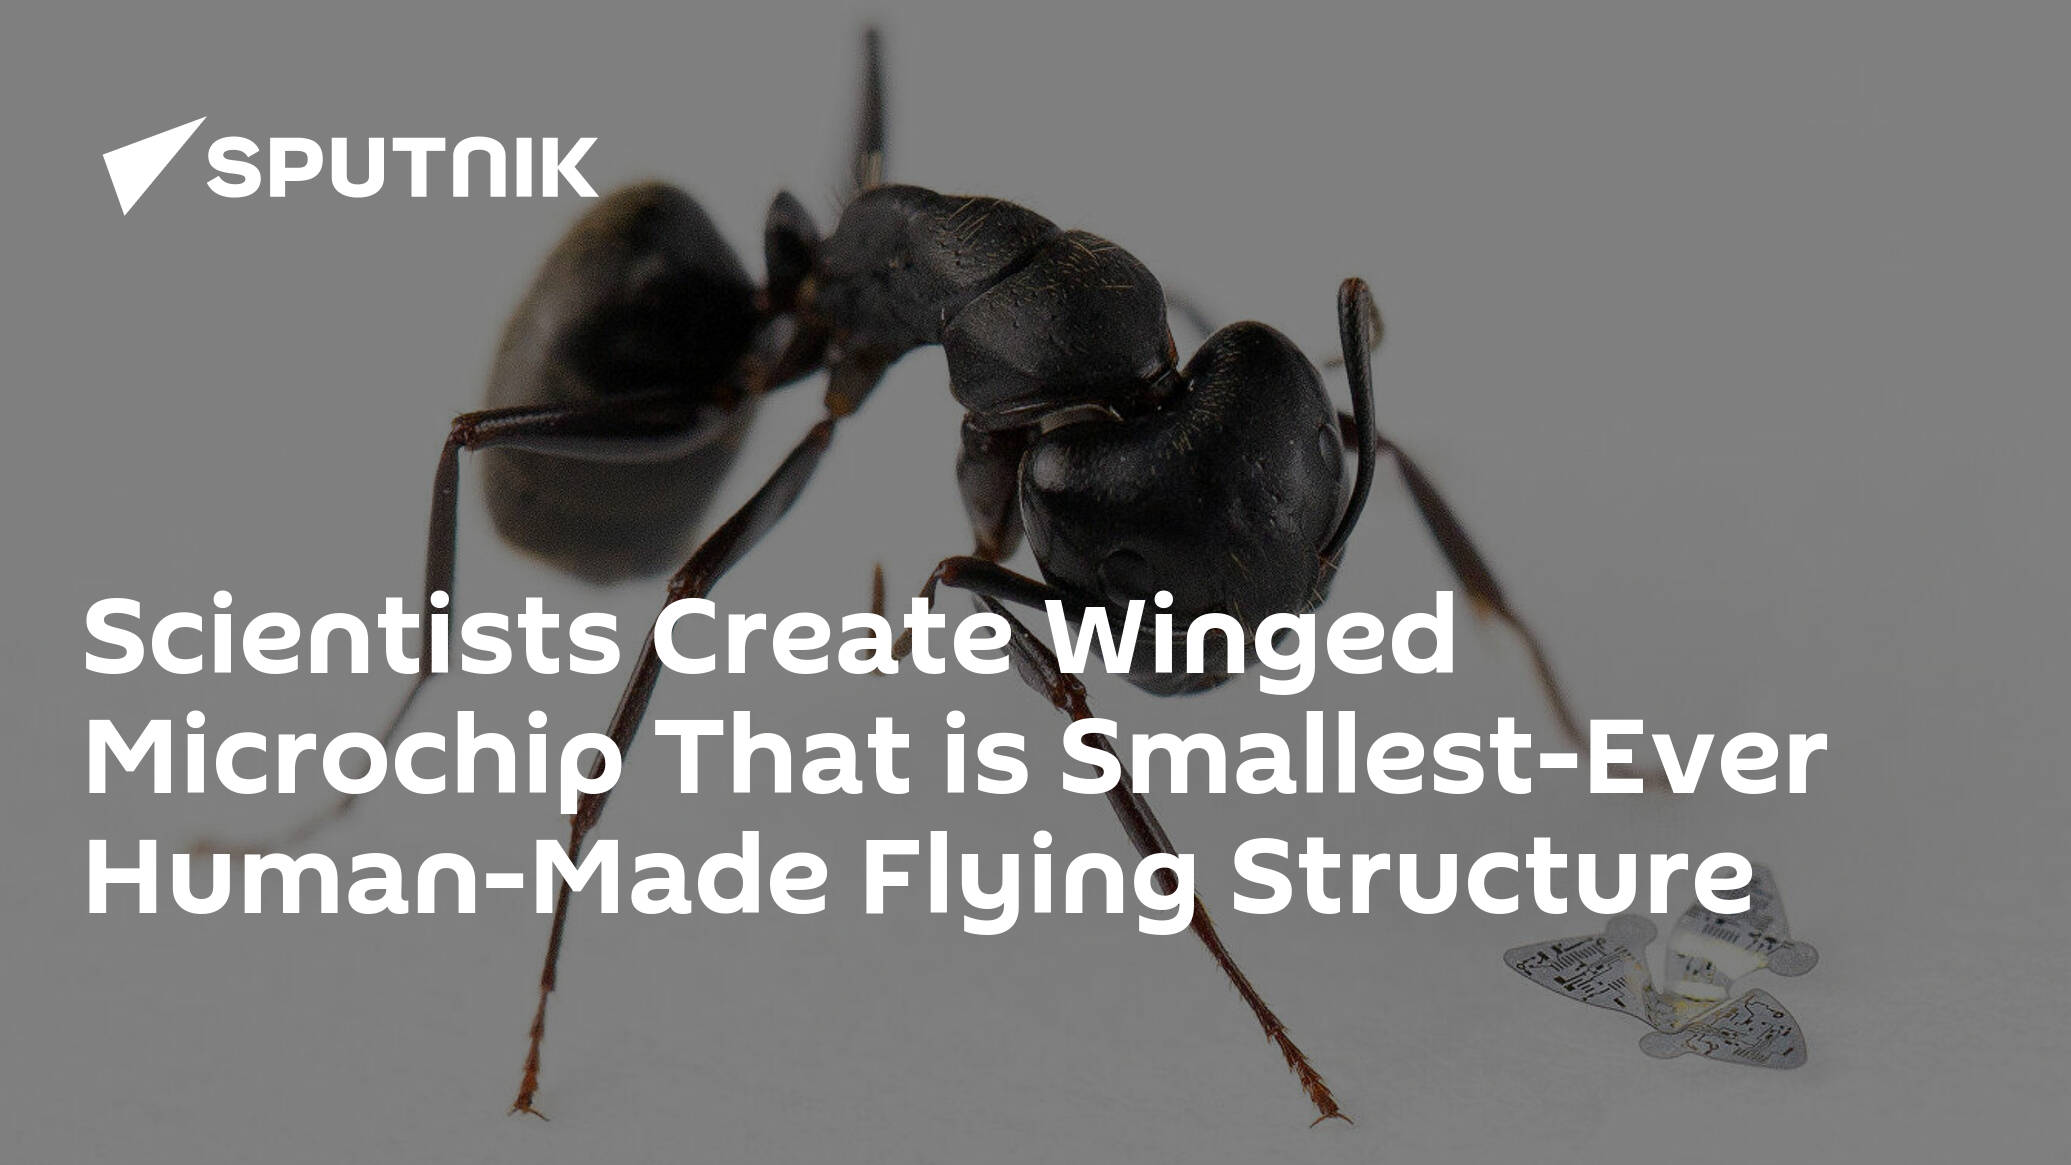 Scientists Create Winged Microchip That is Smallest-Ever Human-Made Flying Structure